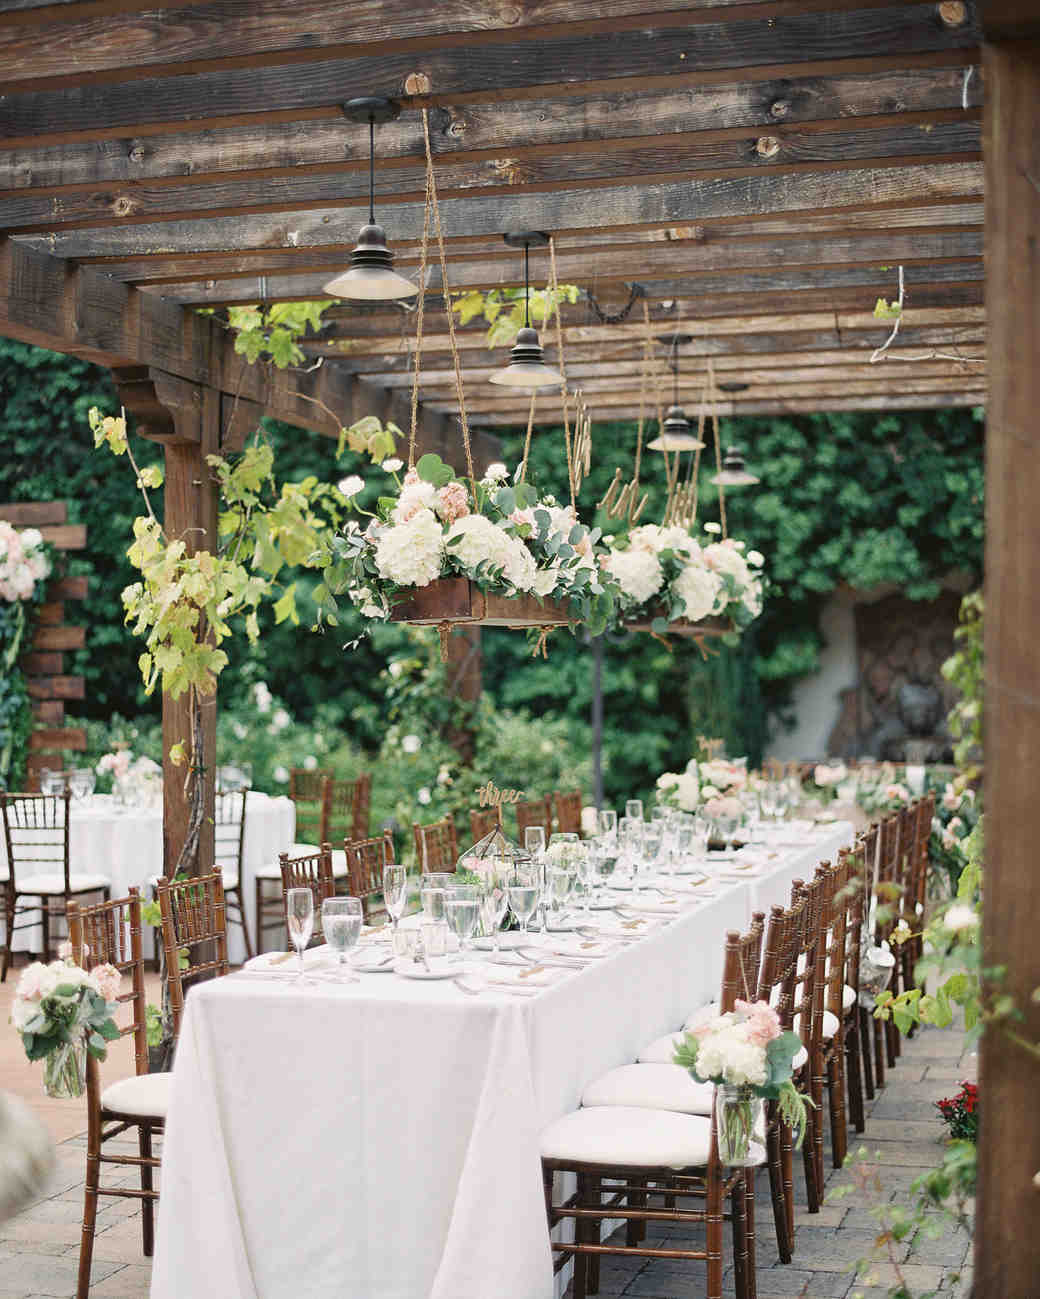 Images Of Wedding Reception Decorations: 28 Ideas For Sitting Pretty At Your Head Table